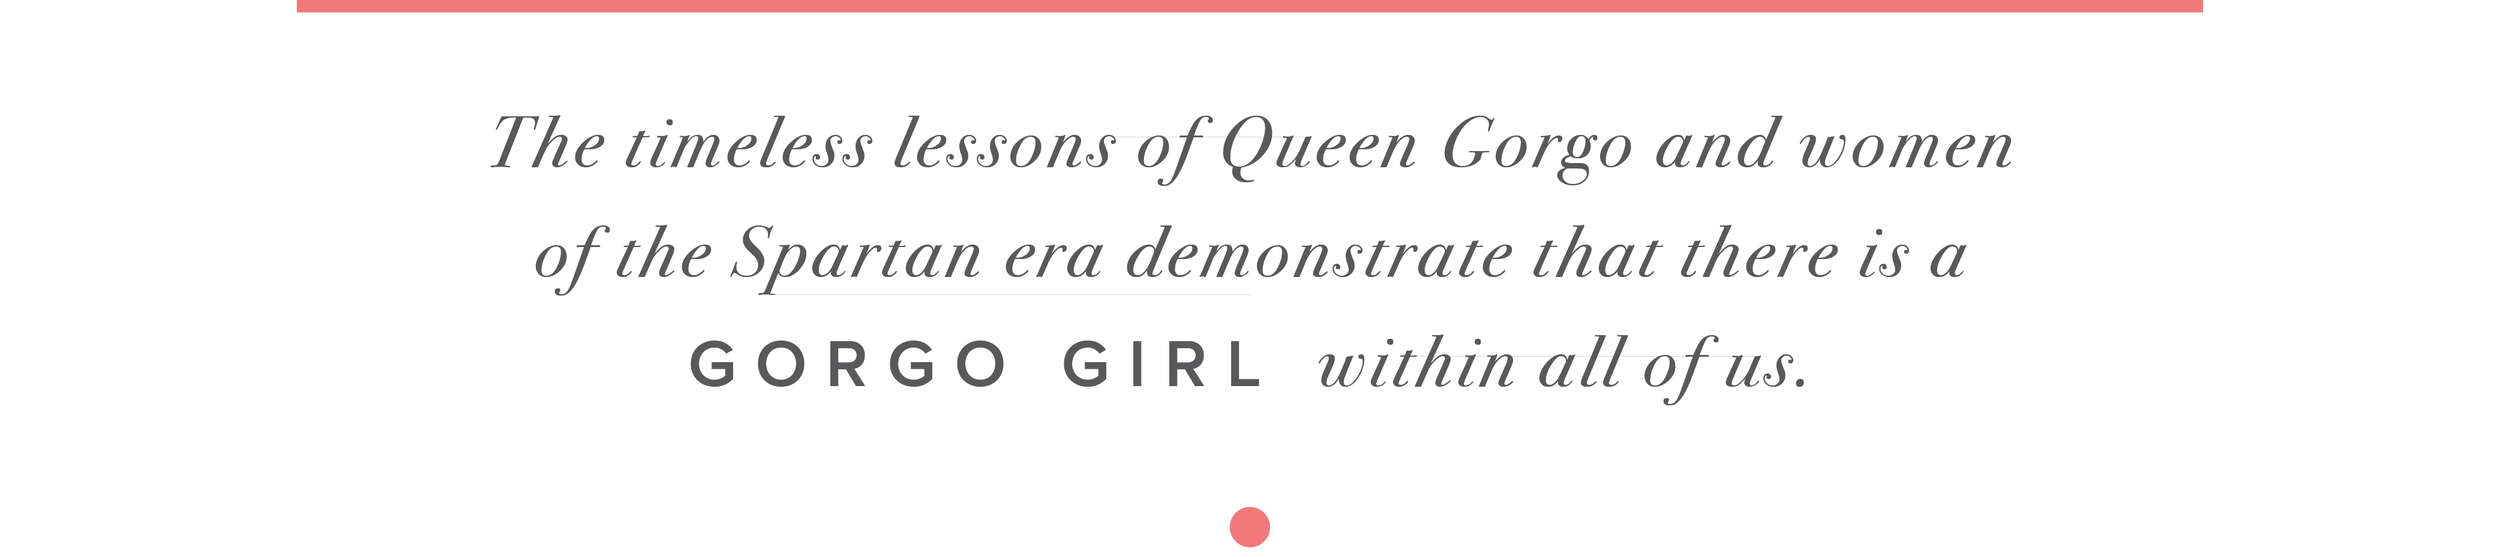 The timeless lessons of Queen Gorgo and women of the Spartan era demonstrate that there is a GORGO Girl within all of us.